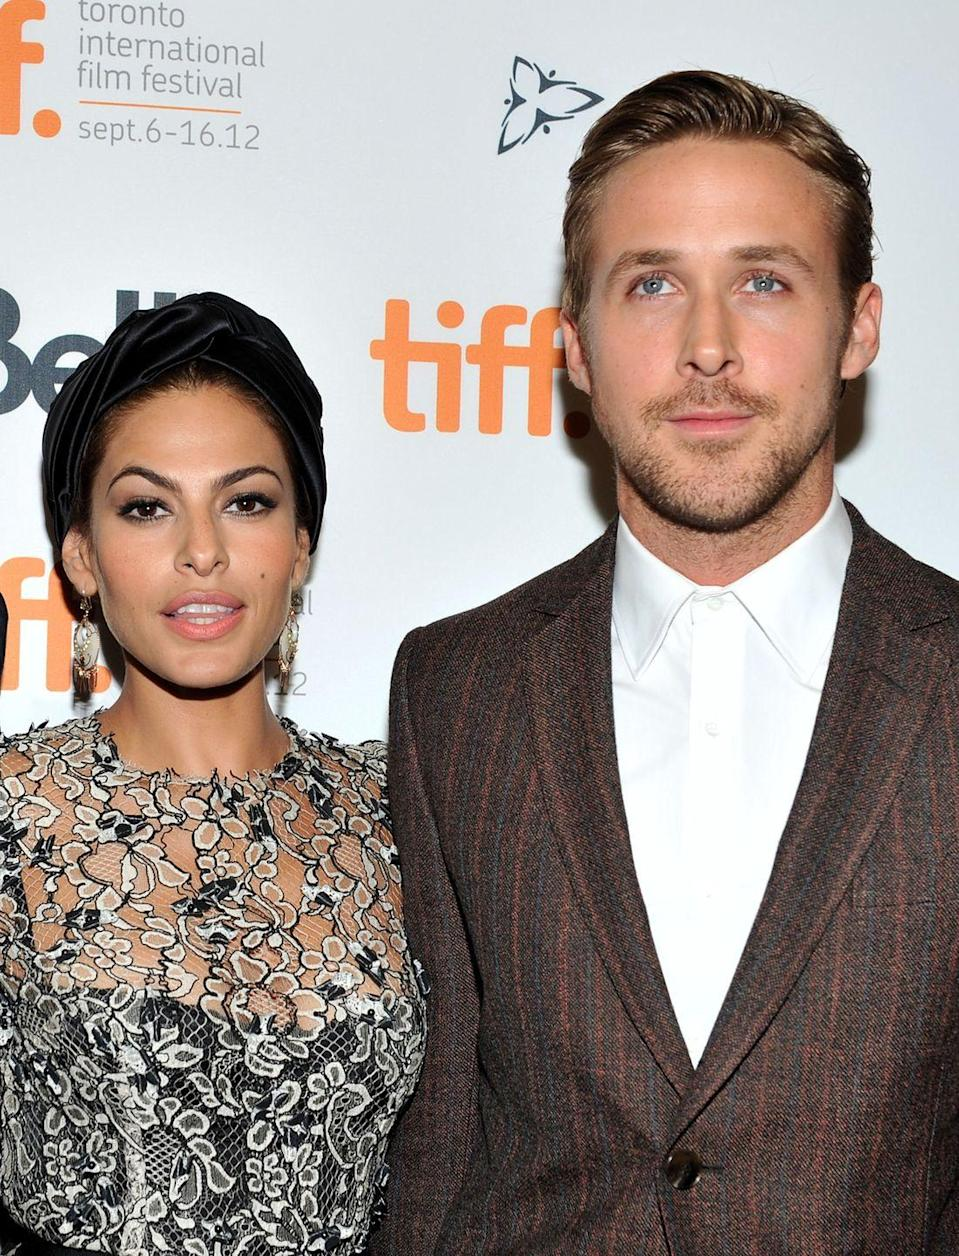 <p>Fans who hoped Ryan Gosling would rekindle his relationship with his <em>The Notebook </em>costar, Rachel McAdams, were left with little to no hope when the actor got together with Eva Mendes in 2011. The couple is notoriously private, so honestly most people have probably forgotten they're even together at this point.<br></p>